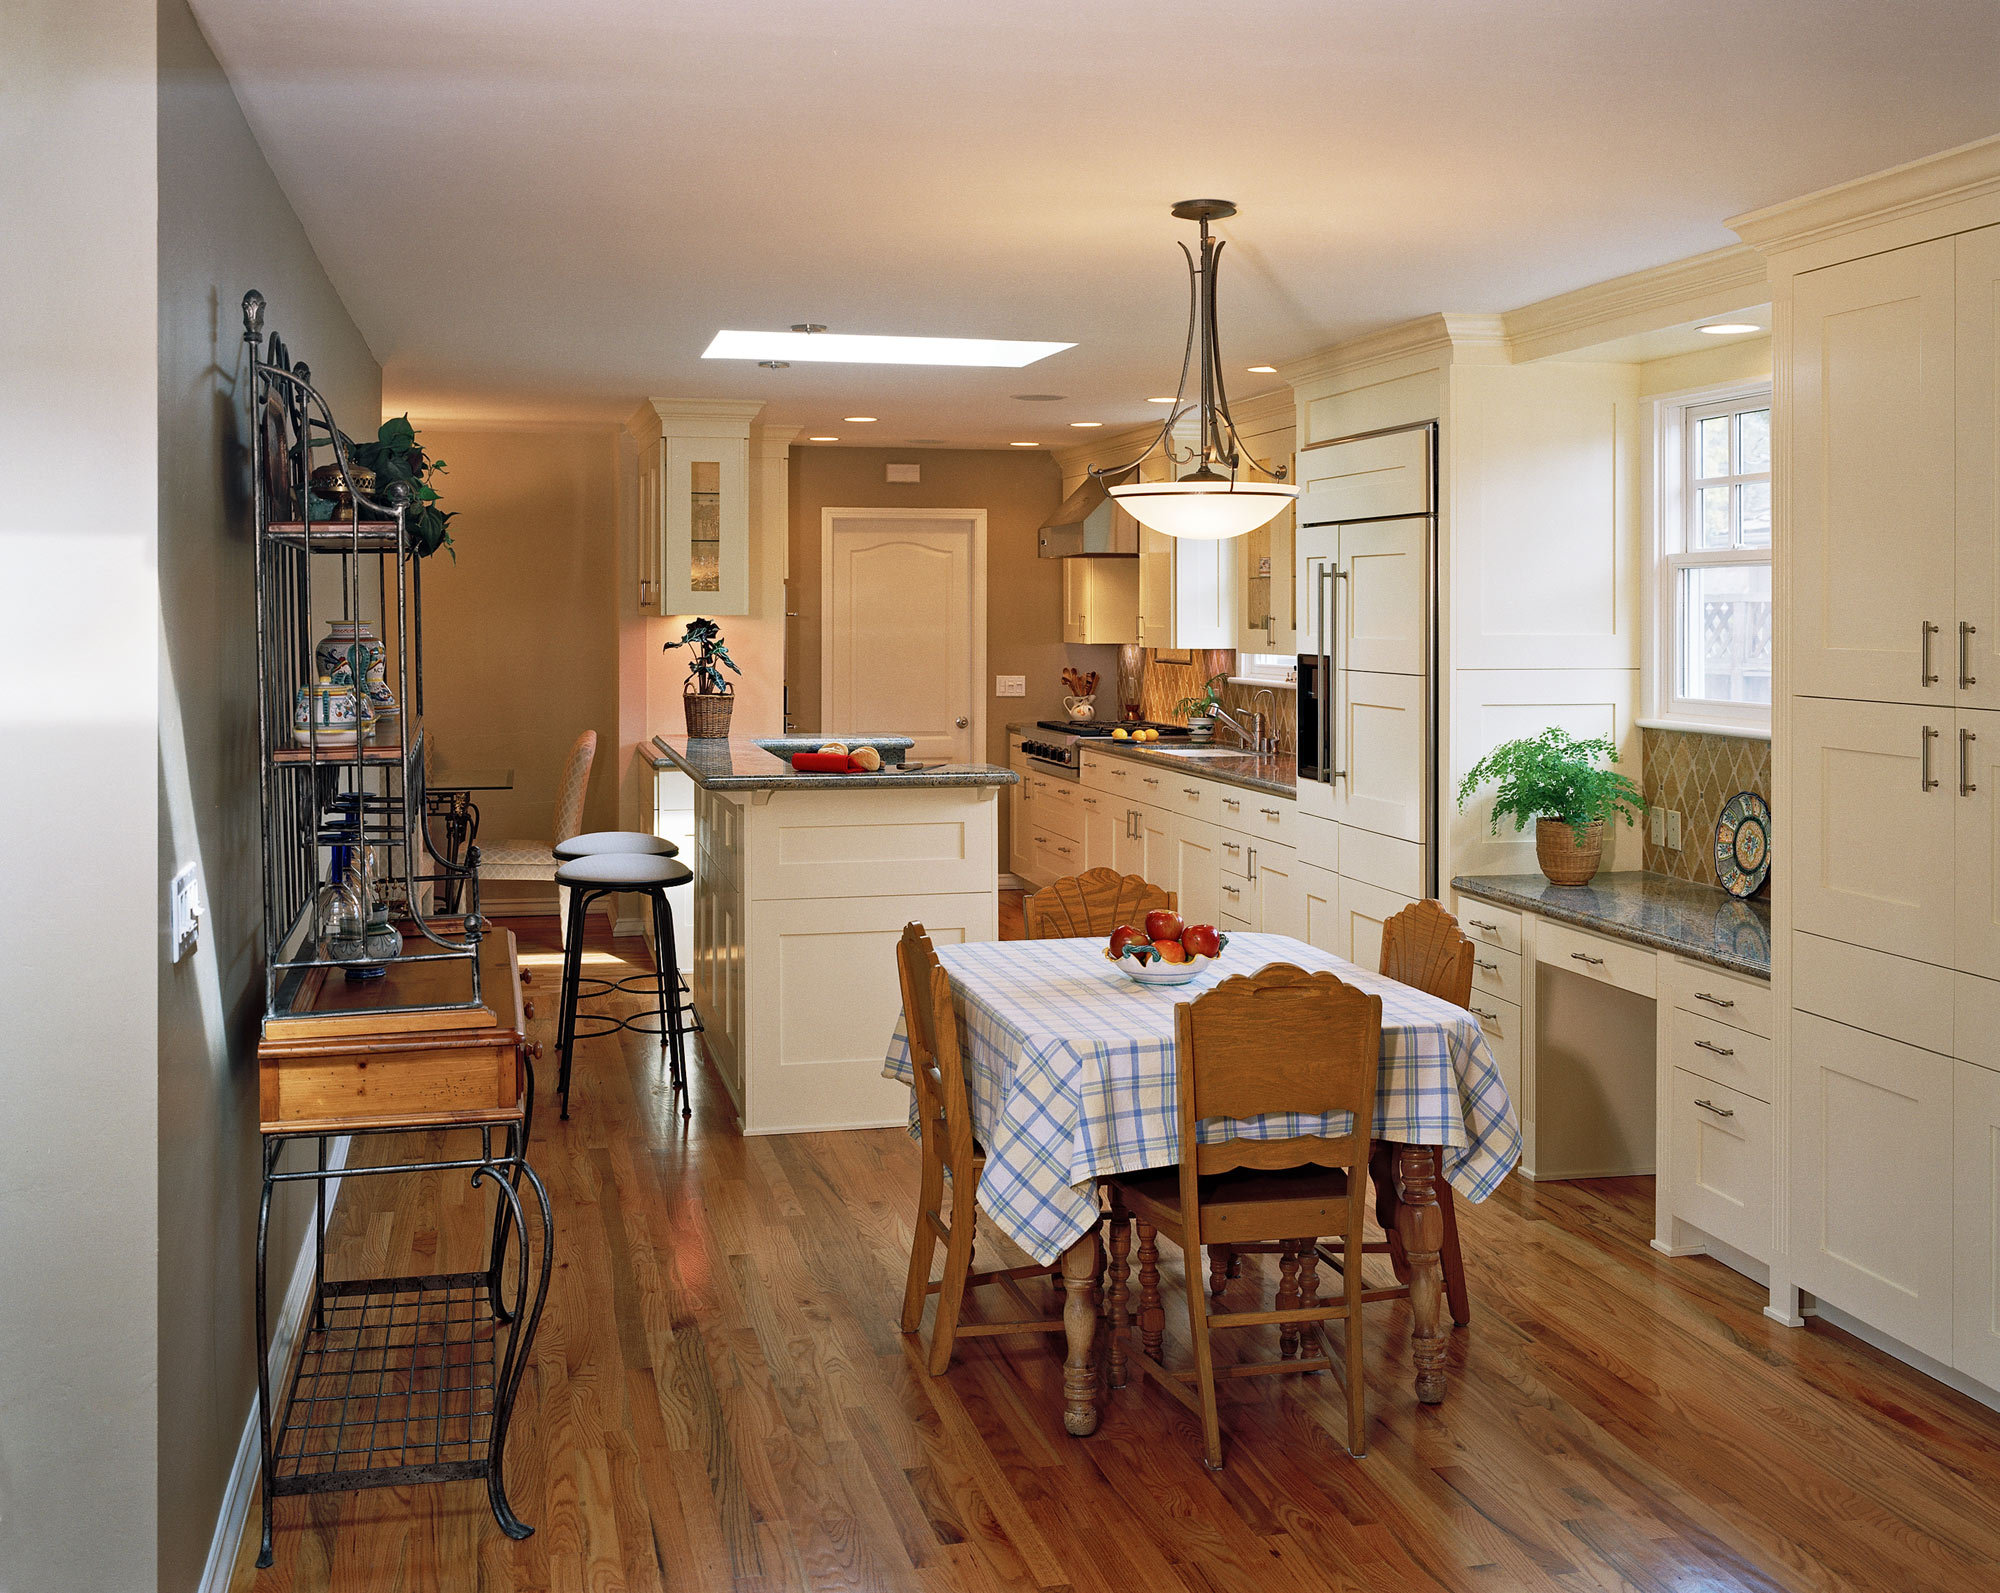 Kitchen and dining room.jpg